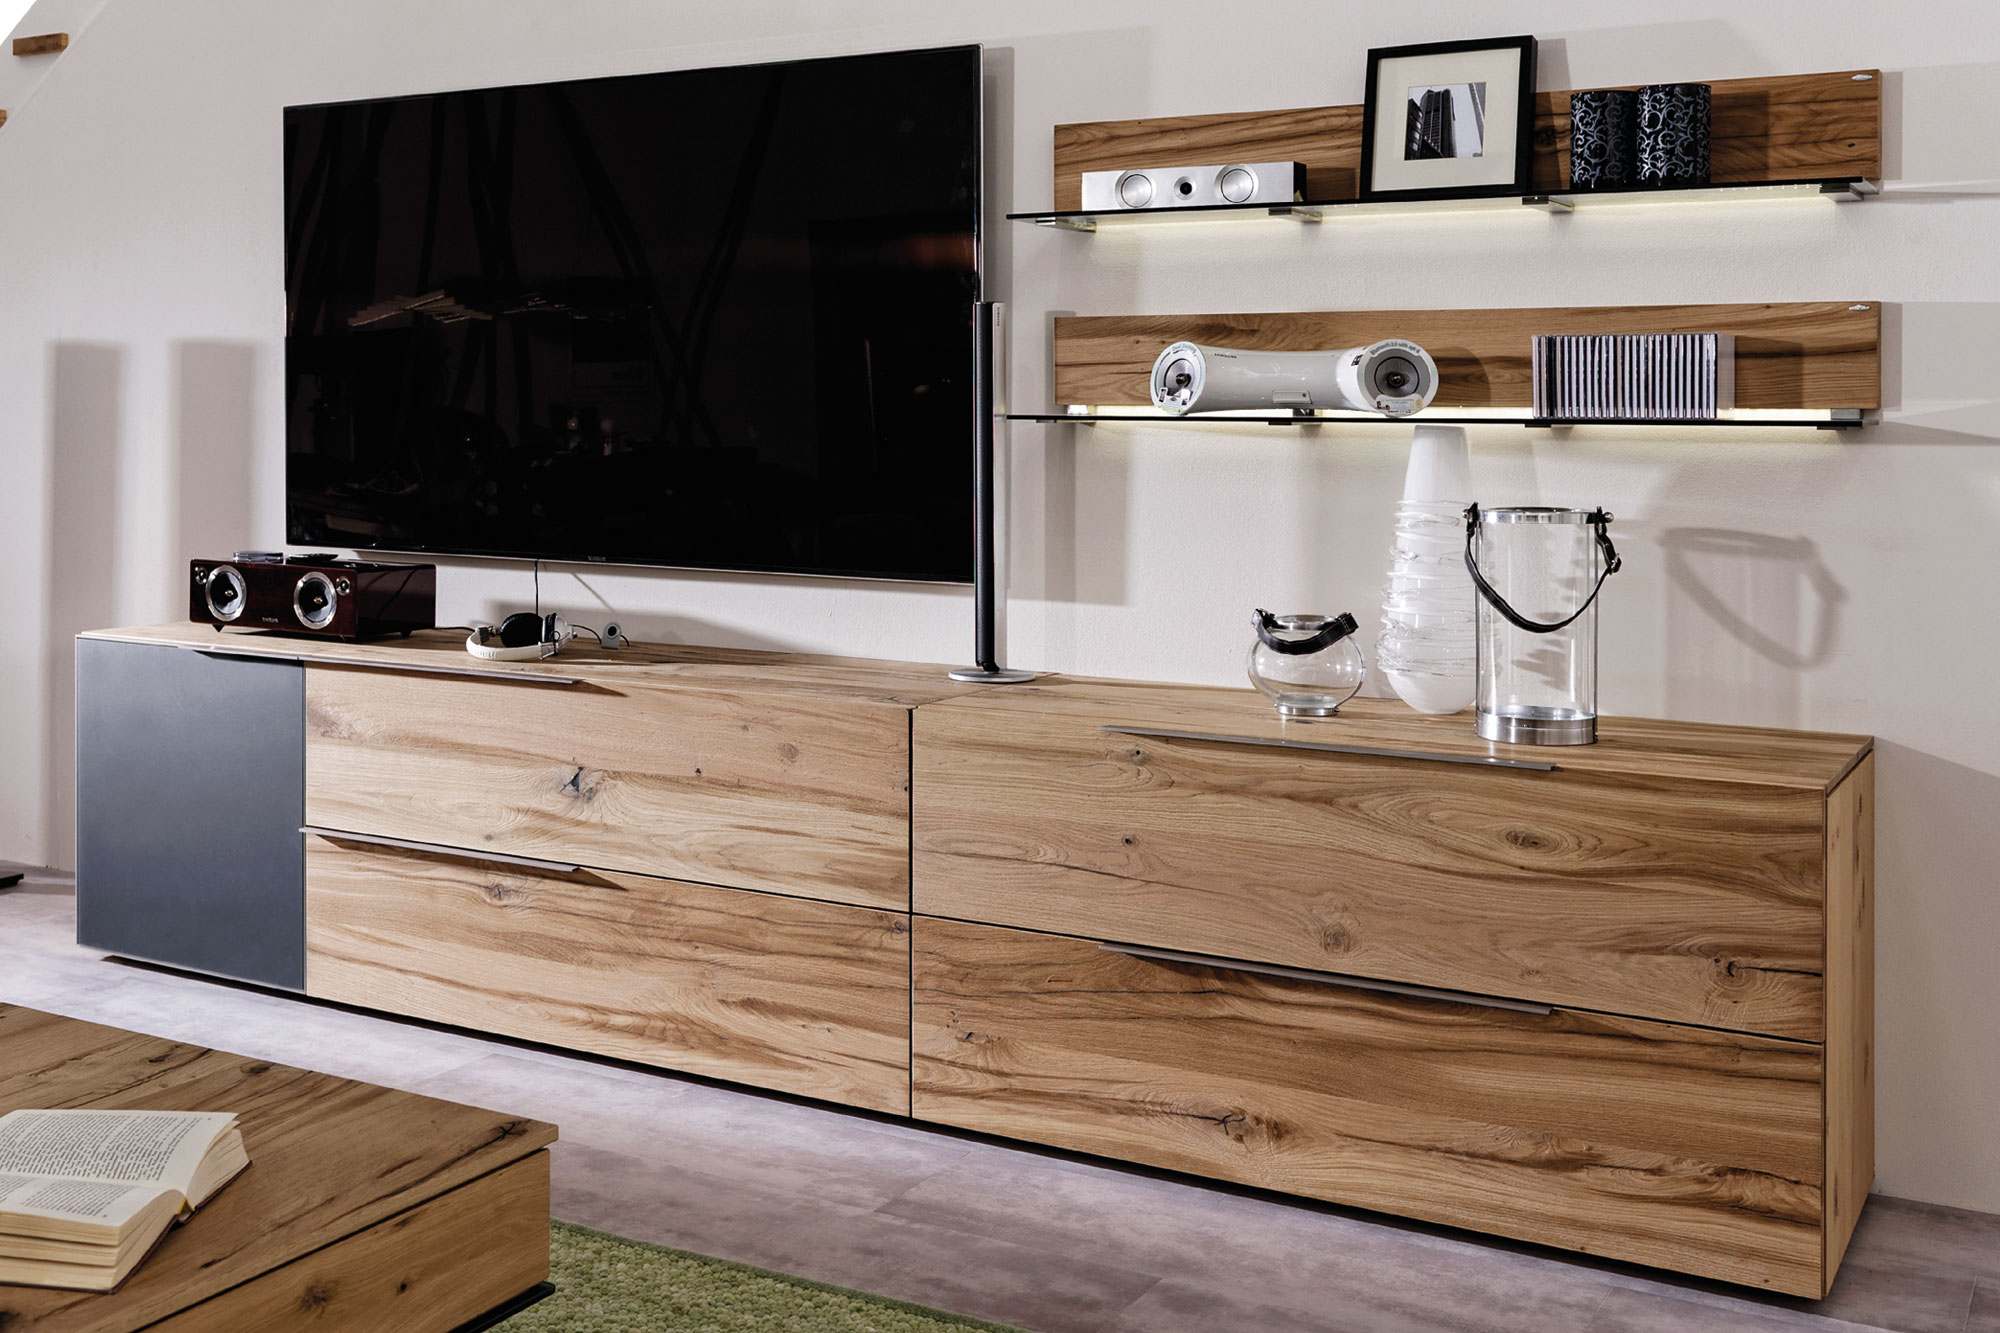 voglauer wohnwand v alpin 336 eiche anthrazit m bel letz ihr online shop. Black Bedroom Furniture Sets. Home Design Ideas